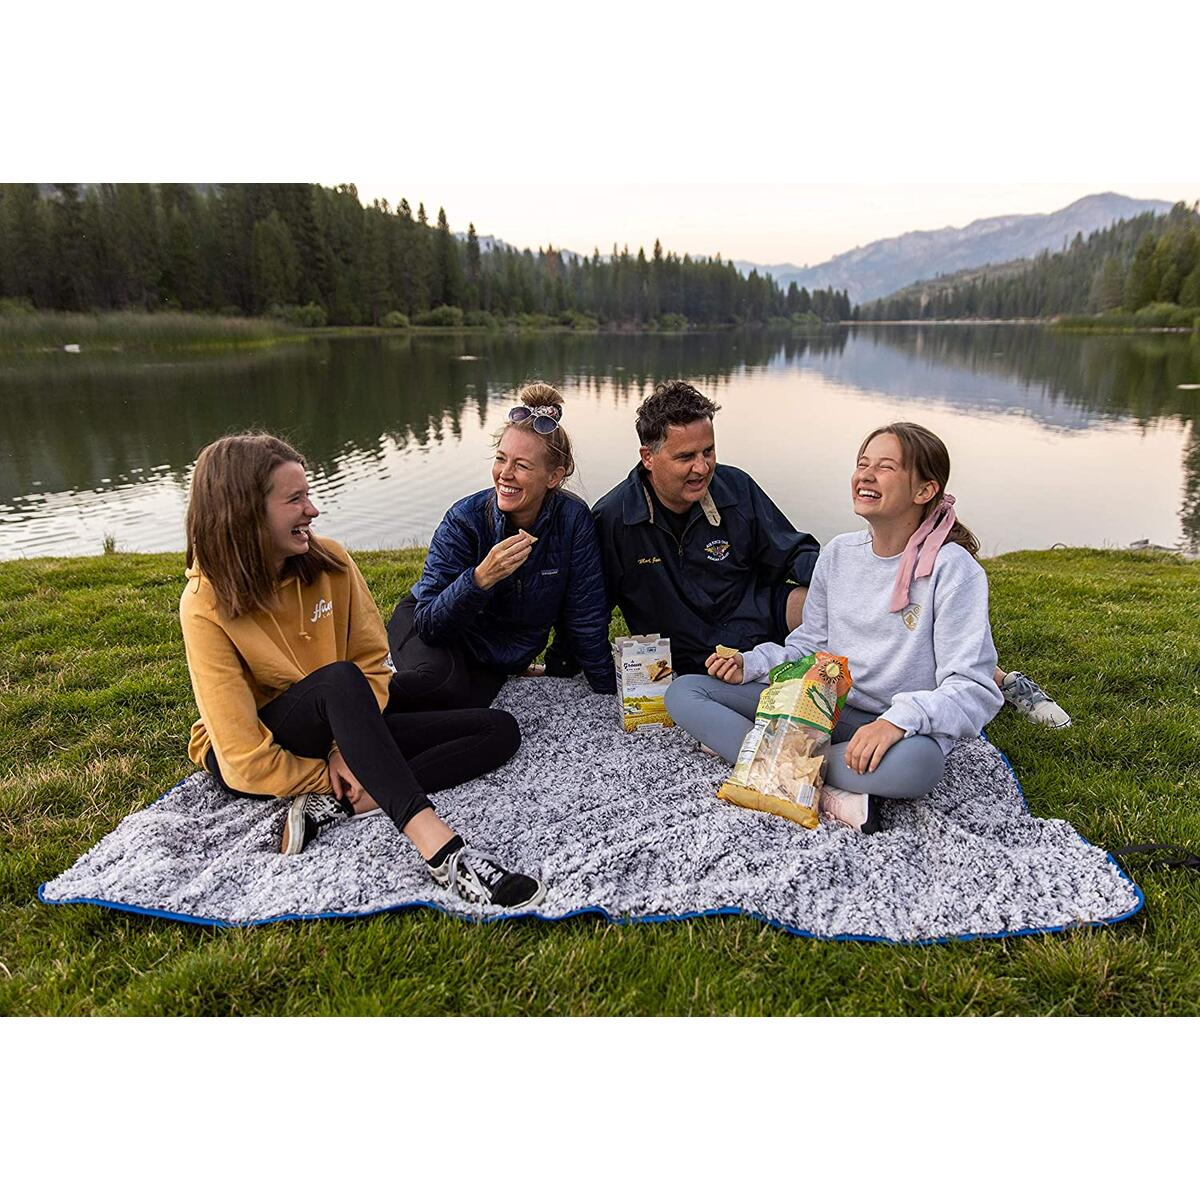 Blue Oceas Outdoor Sherpa Fleece Ultra Plush Waterproof Blanket - Great for Camping, Outdoor Festival, Stadium and Picnic Use – Super Soft and Warm Throw Blankets for Winter and Cold Weather…